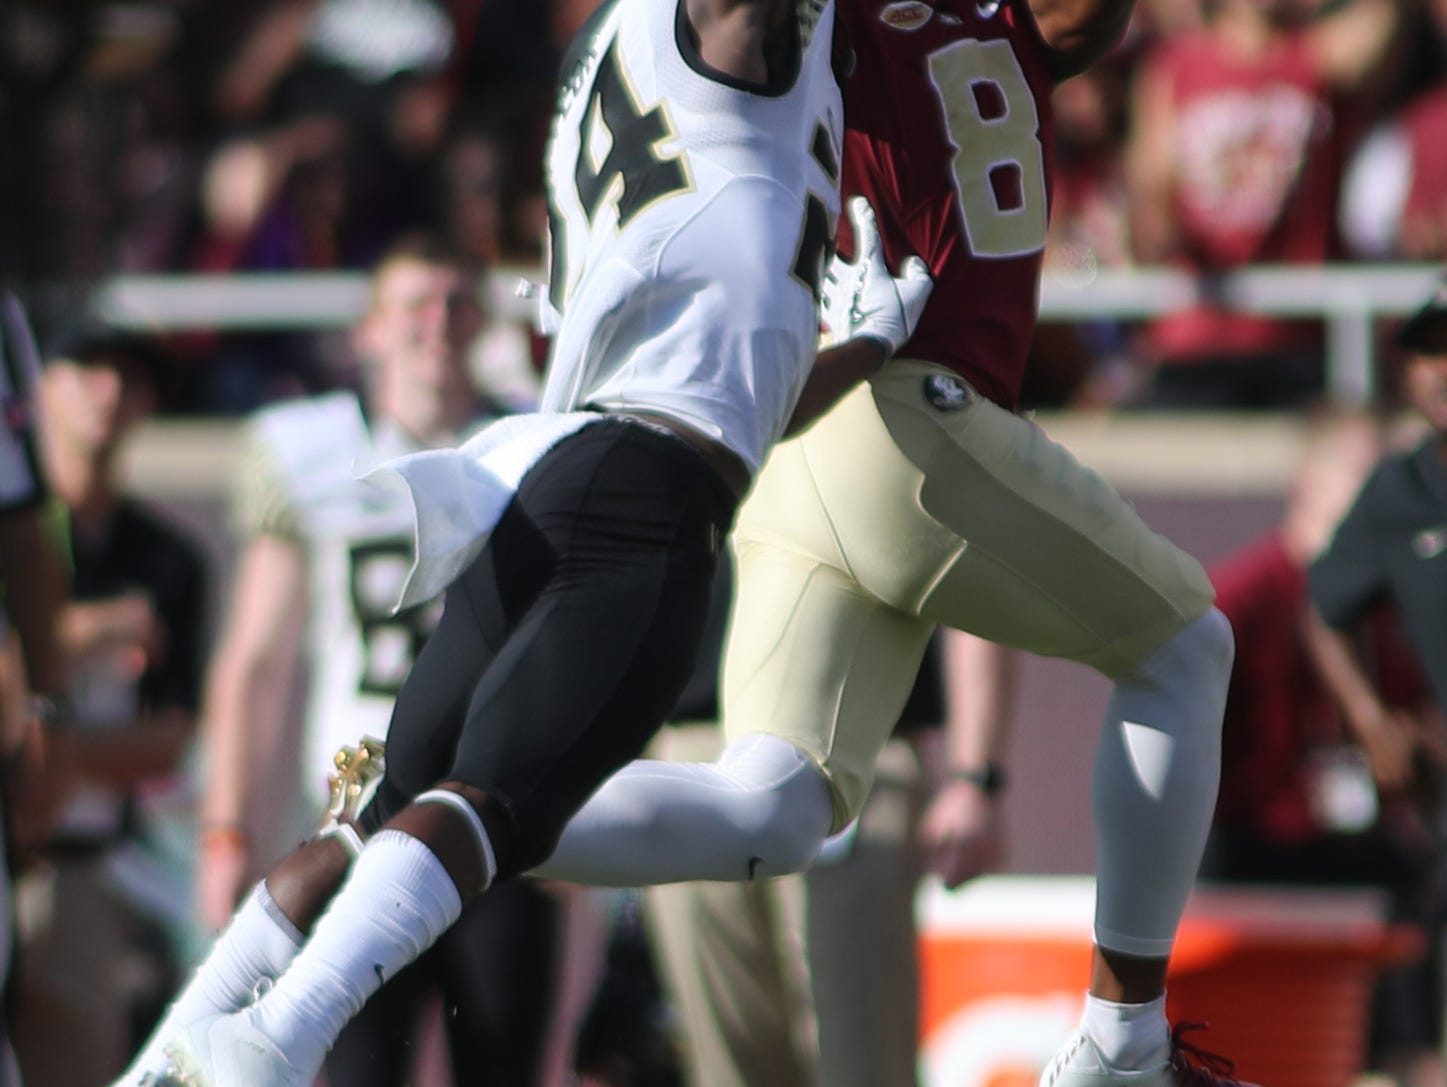 Florida State Seminoles wide receiver Nyqwan Murray (8) goes up for a catch against Wake Forest Demon Deacons defensive back Ja'Sir Taylor (24) during FSU's homecoming game against Wake Forest at Doak S. Campbell Stadium Saturday, Oct. 20, 2018.